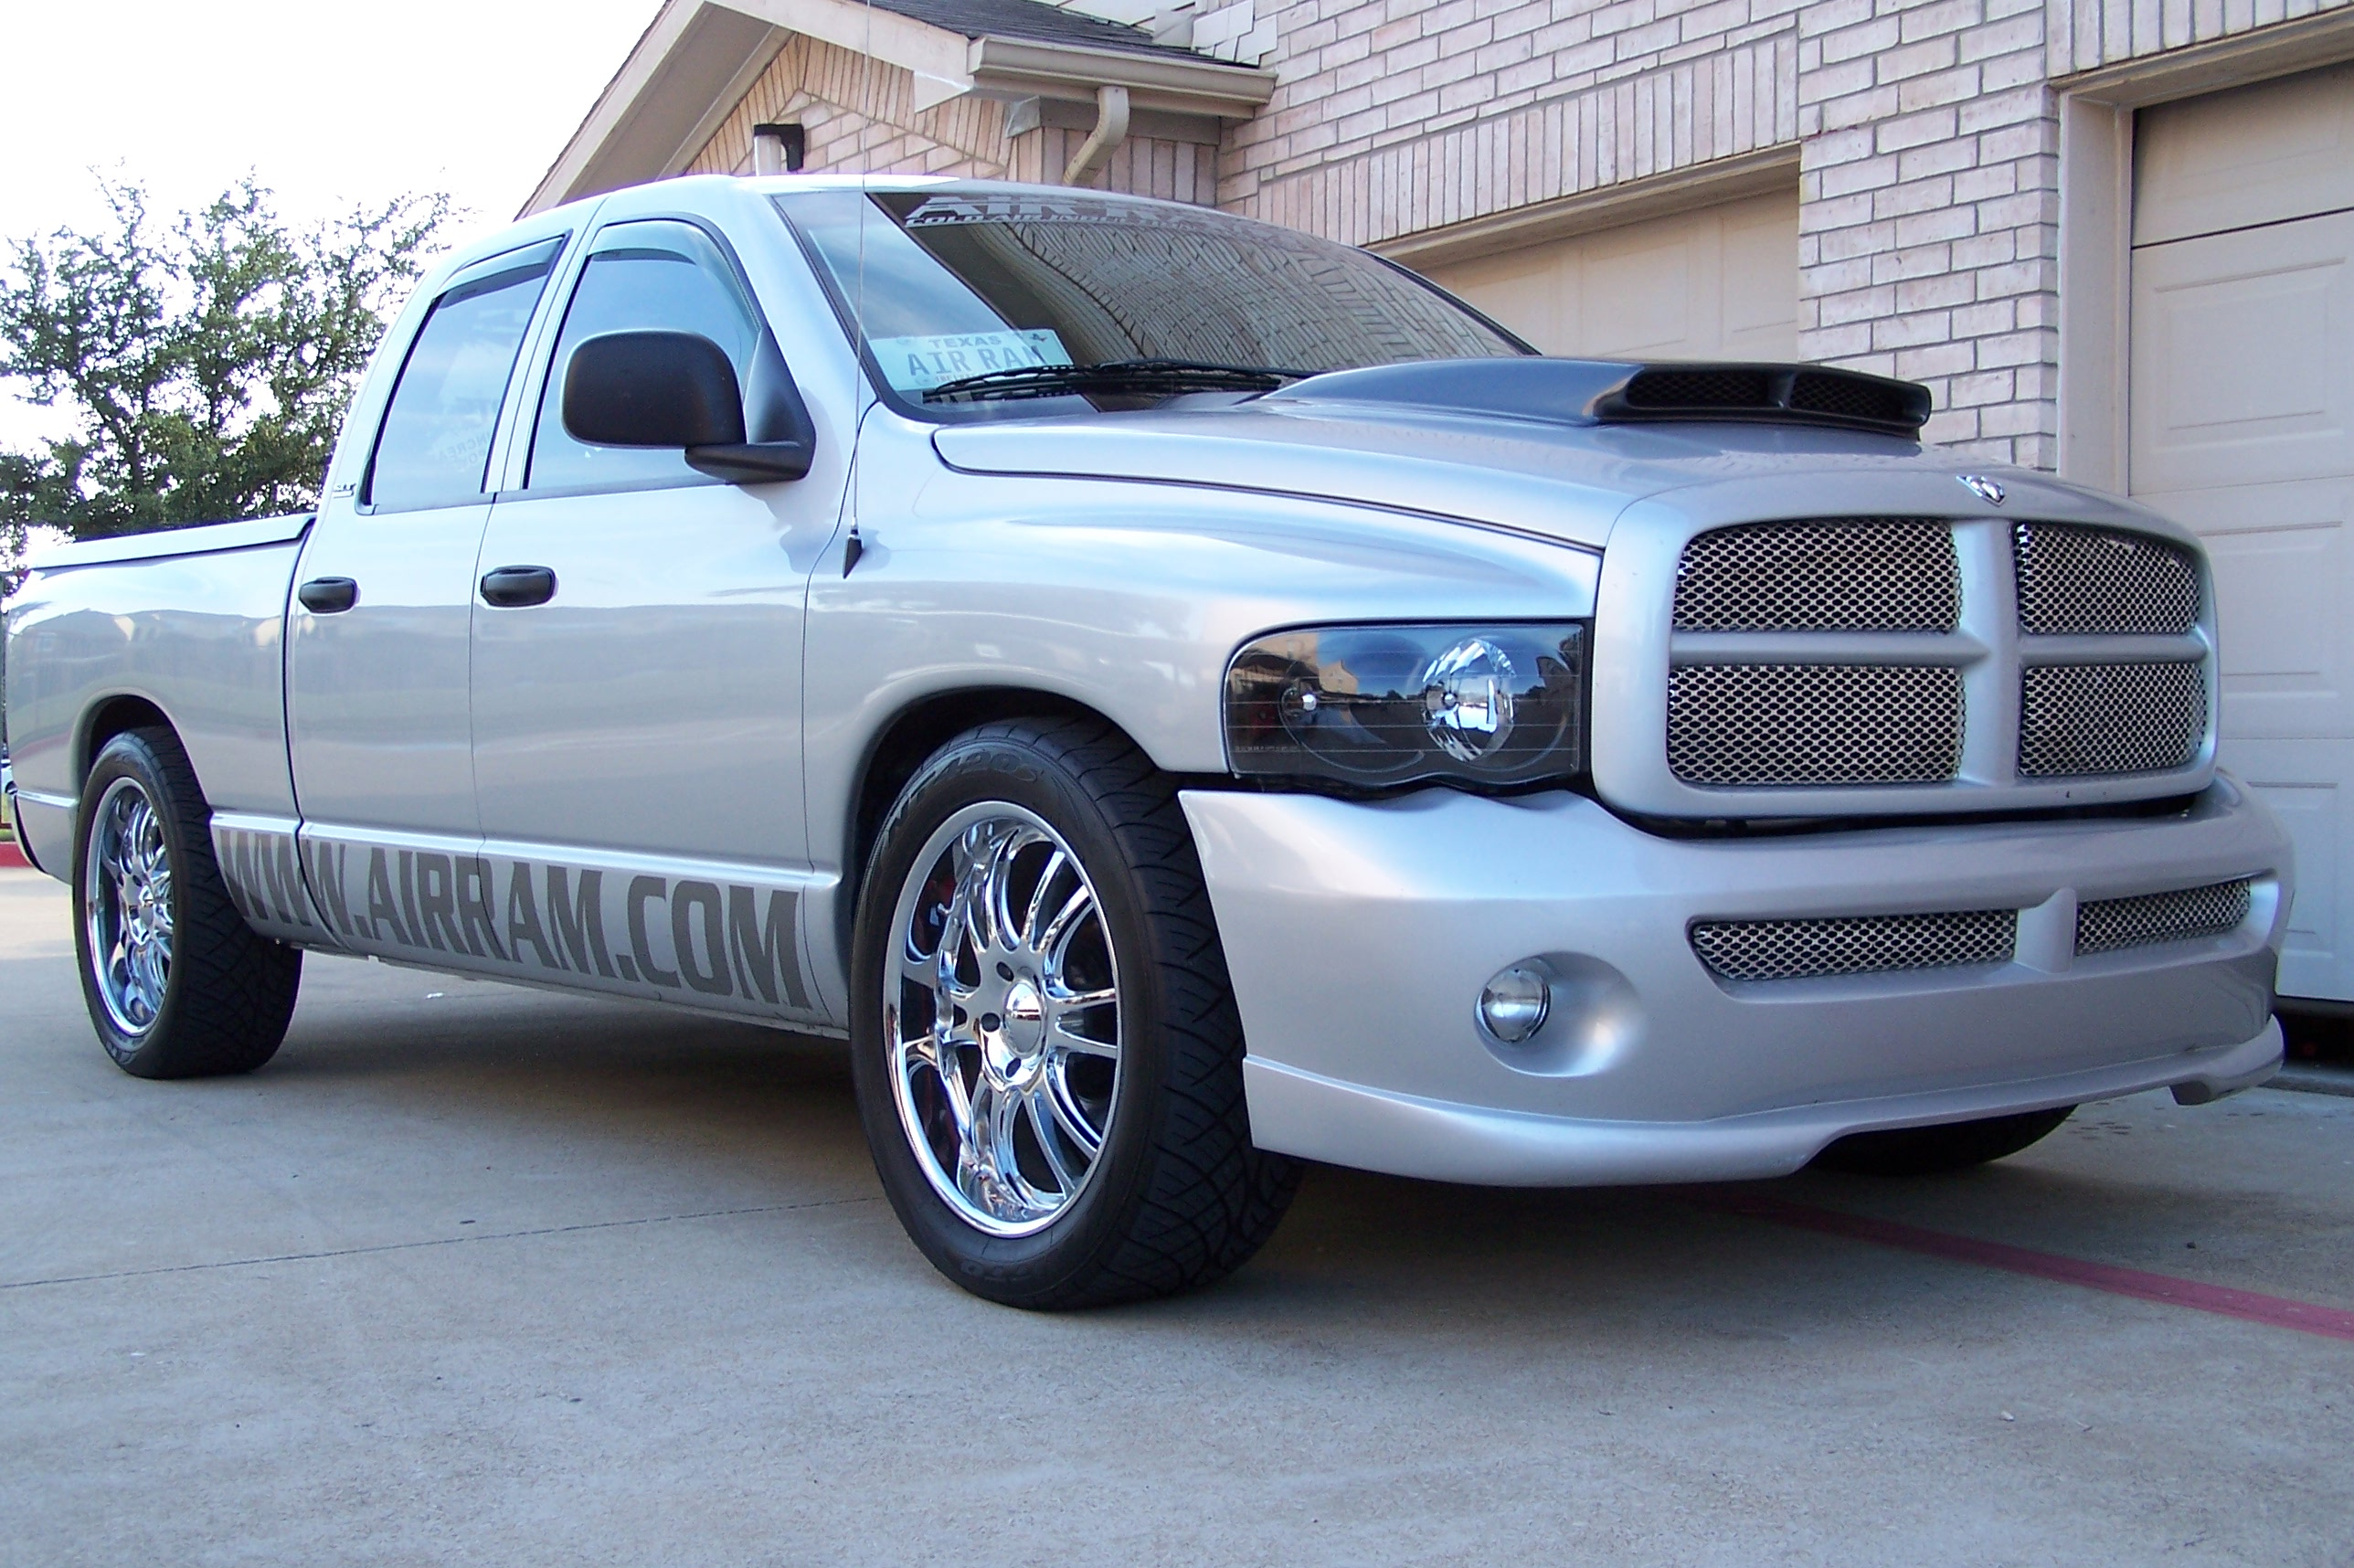 2002 Dodge Ram 1500 SLT QUAD CAB 4.7L MAGNUM 1/4 mile Drag Racing